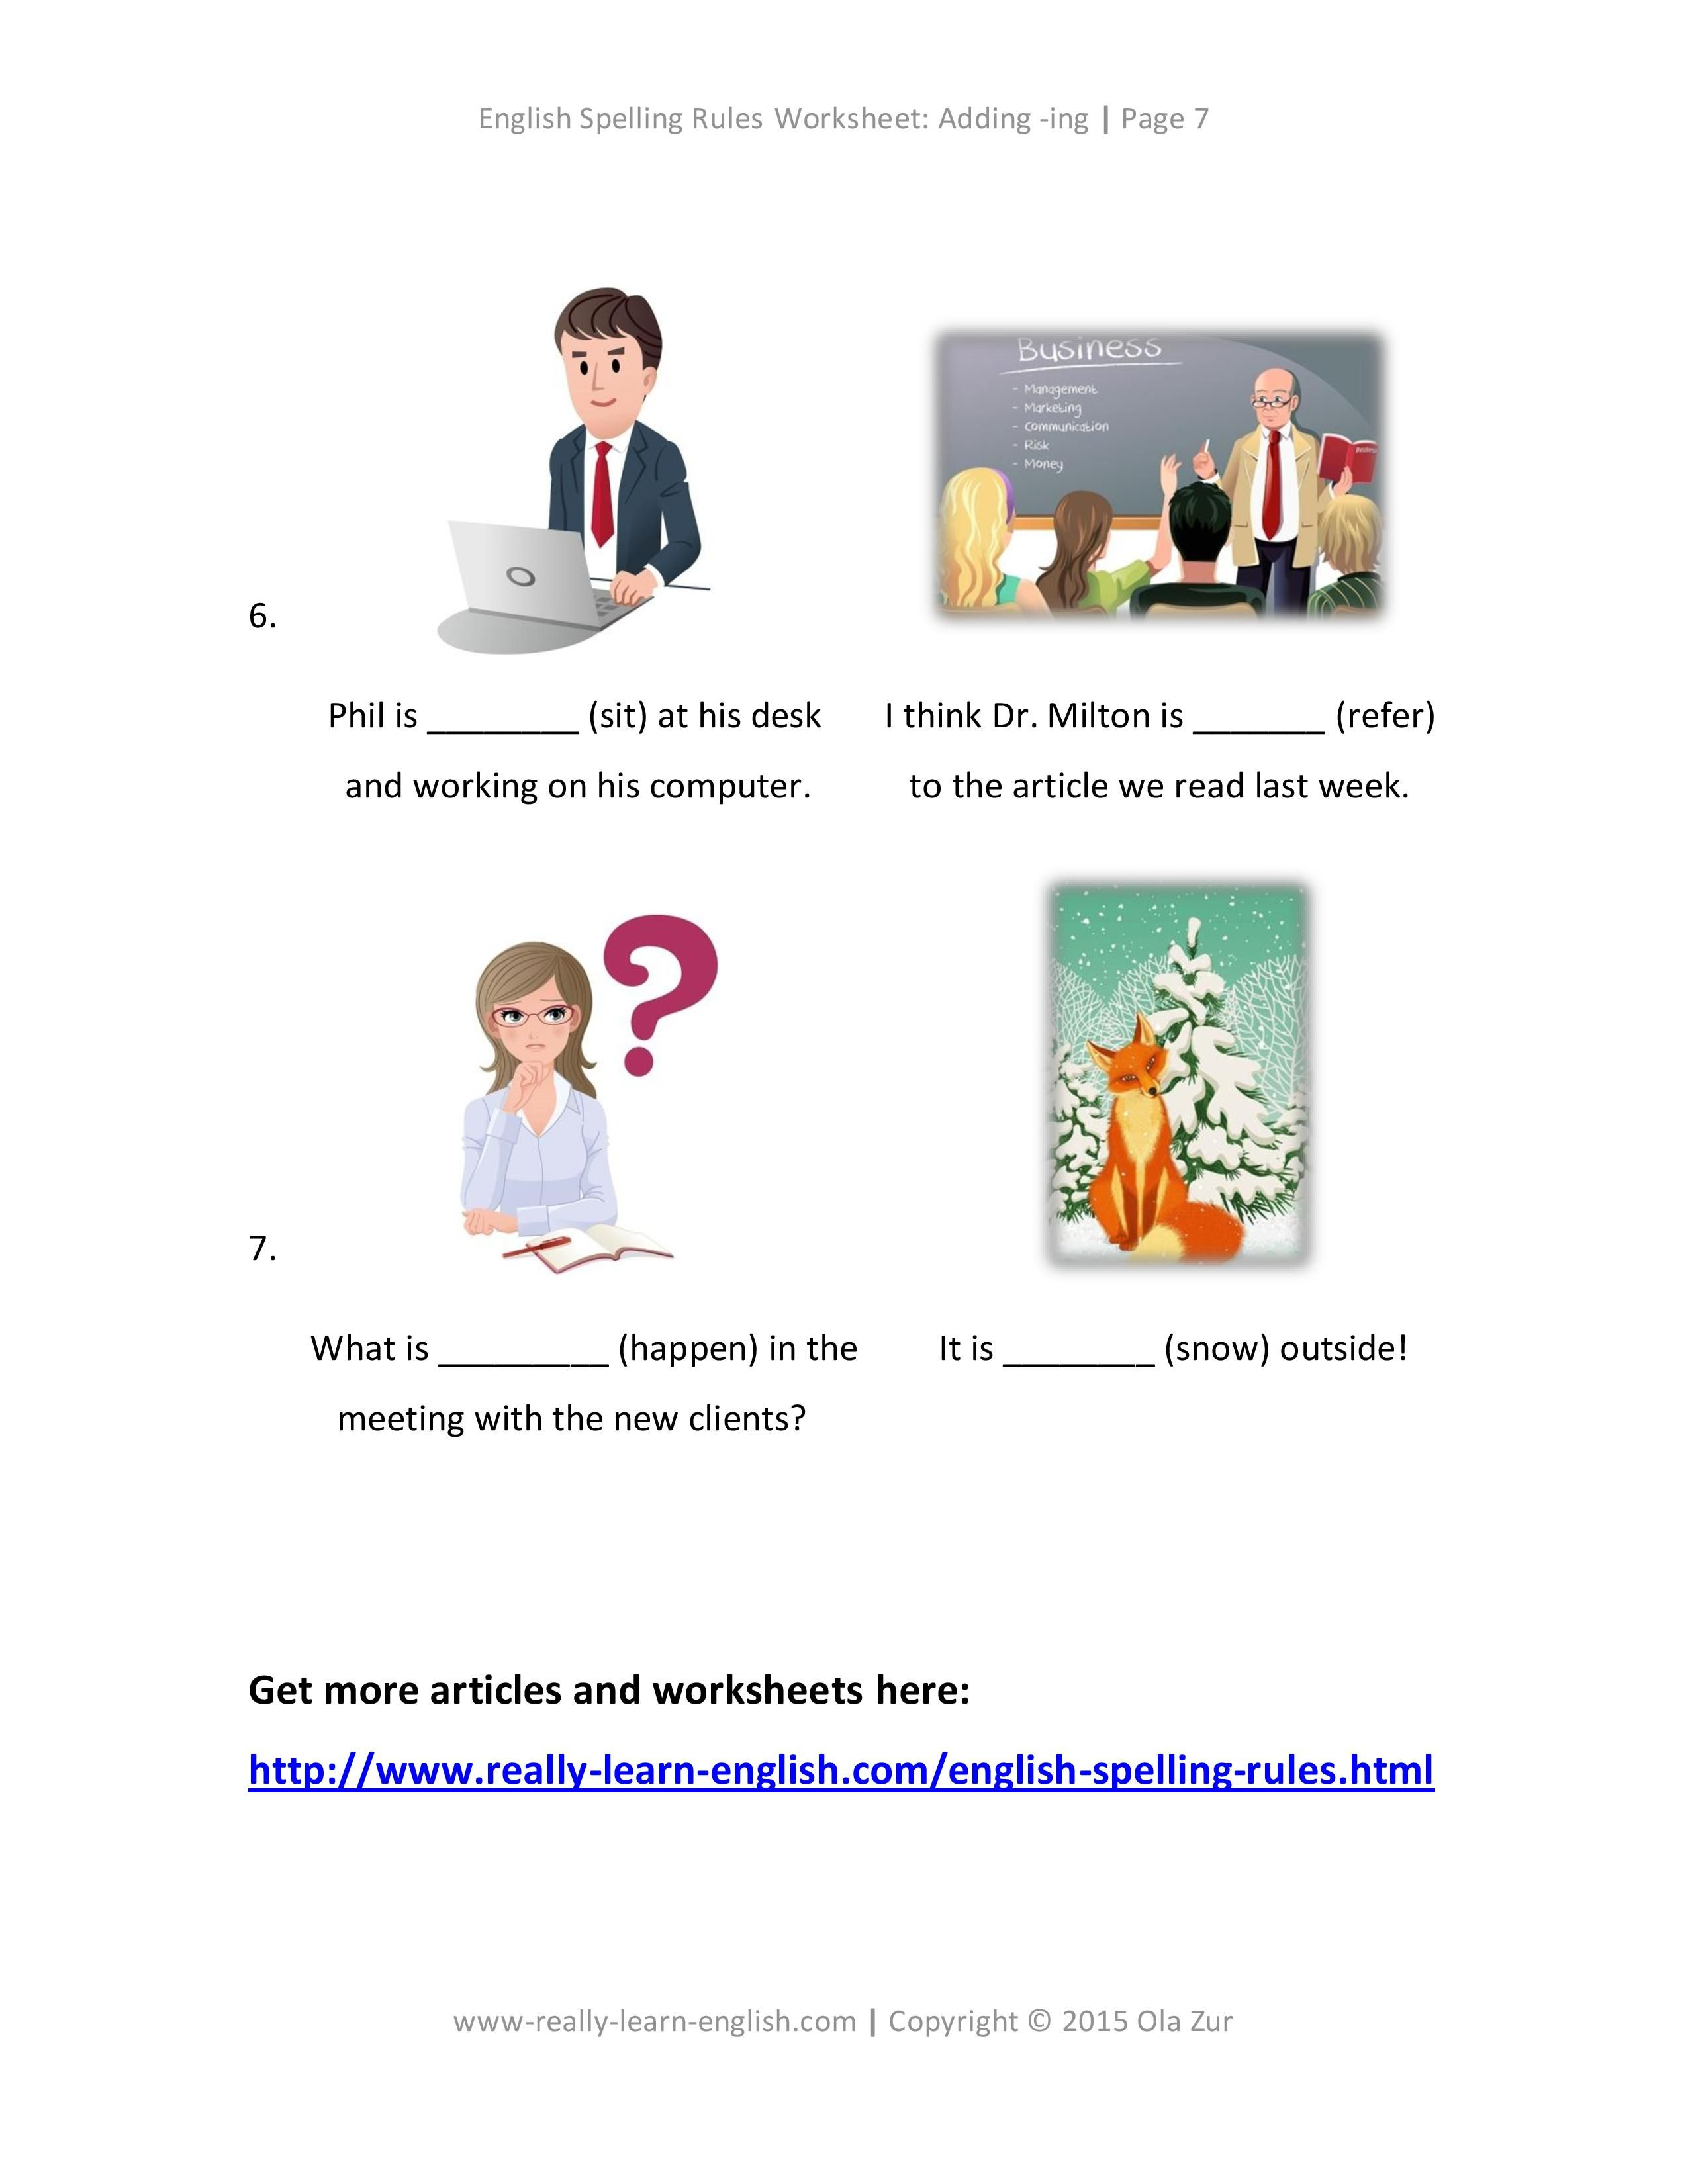 English Spelling Rules How to add ing to a verb in English FREE